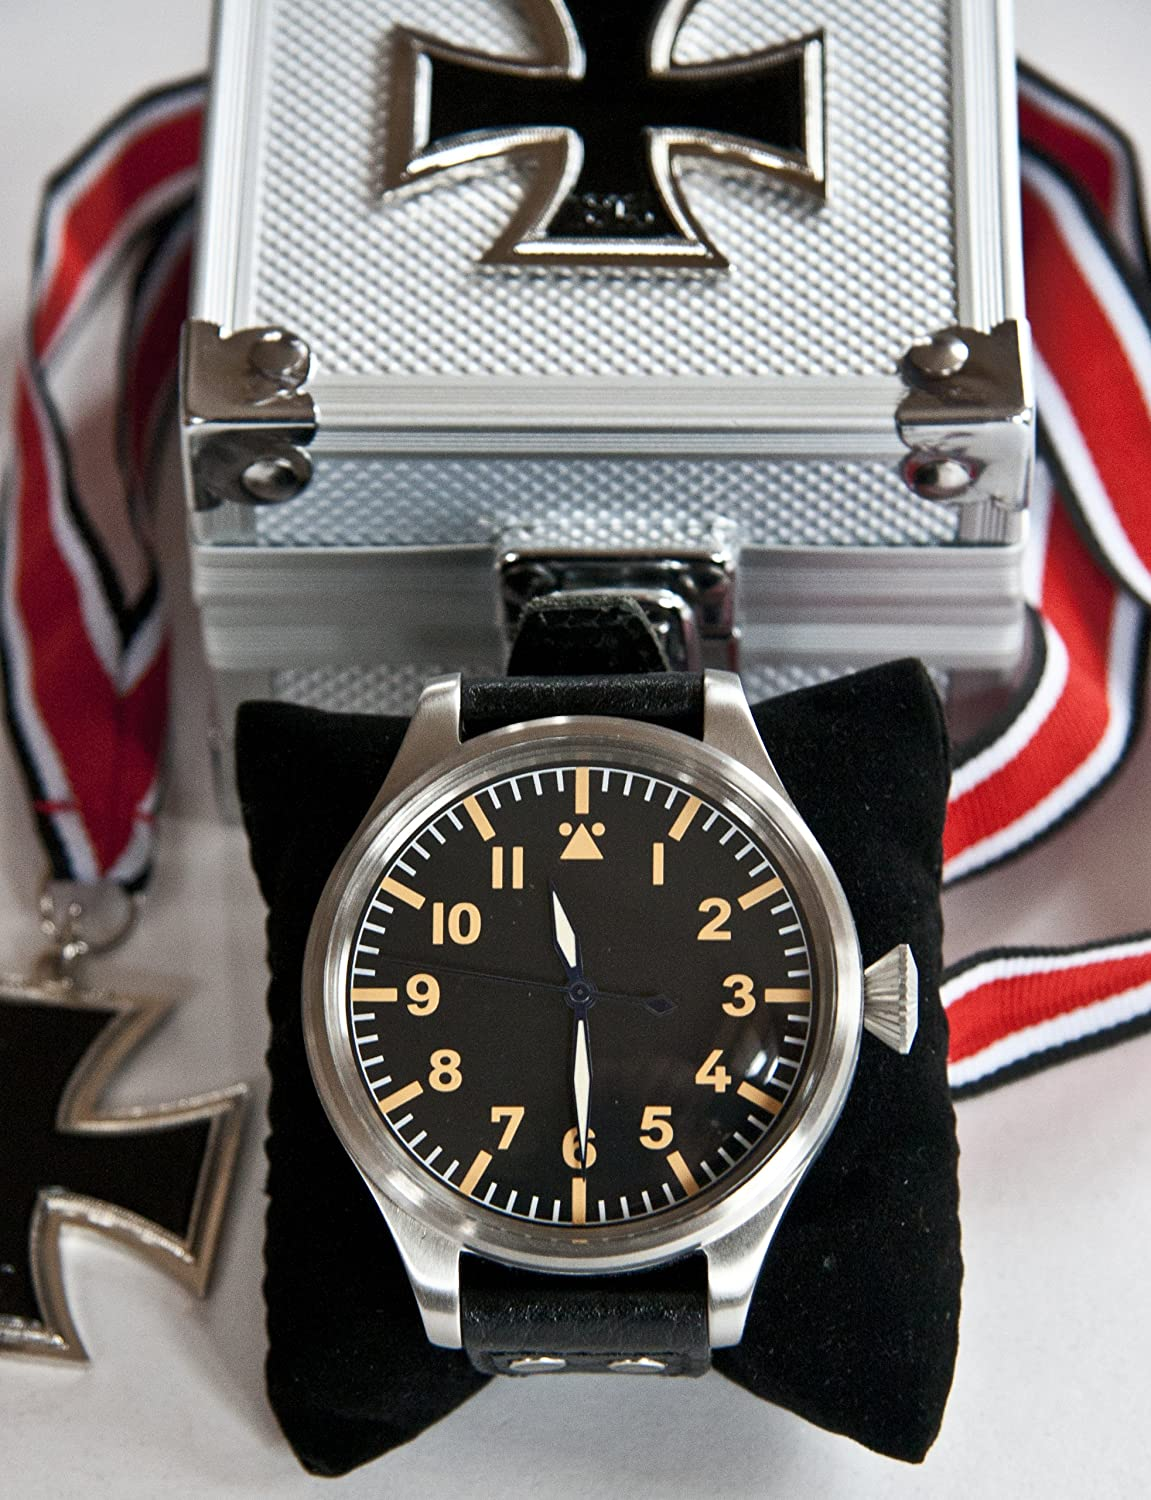 B-UHR Pilot 55, Masterpiece, Luxury Watch, Pilot Watch